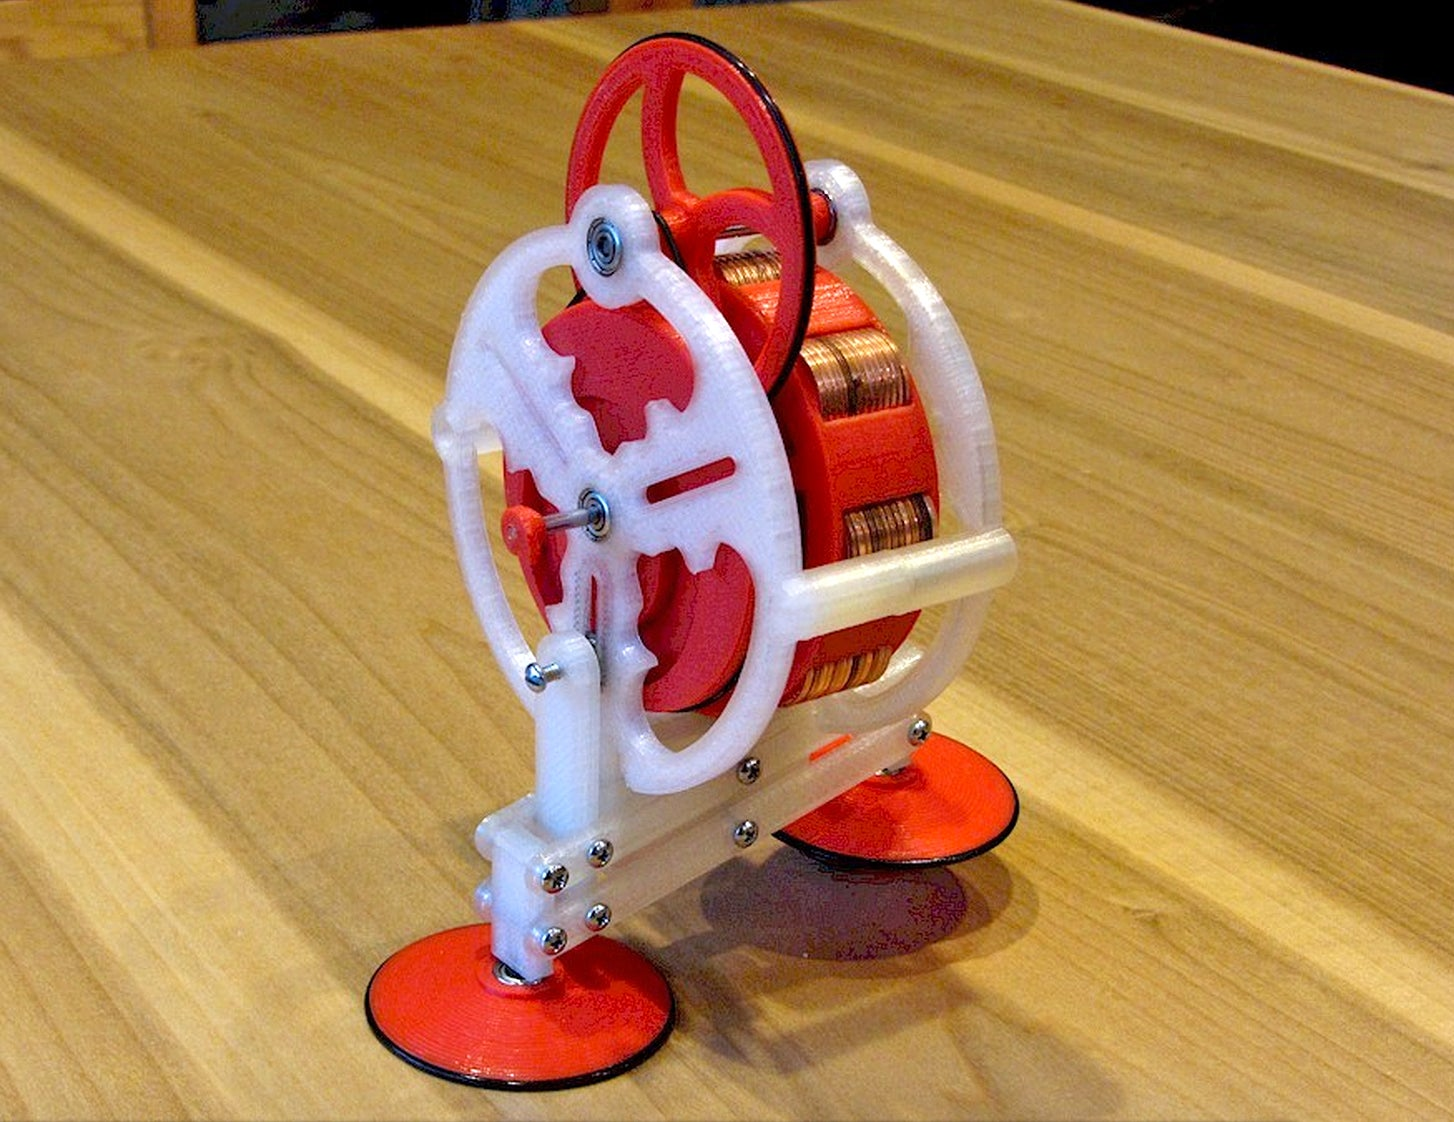 Got Loose Change? 104 Pennies Help This Simple 3D-Printed Toy Walk